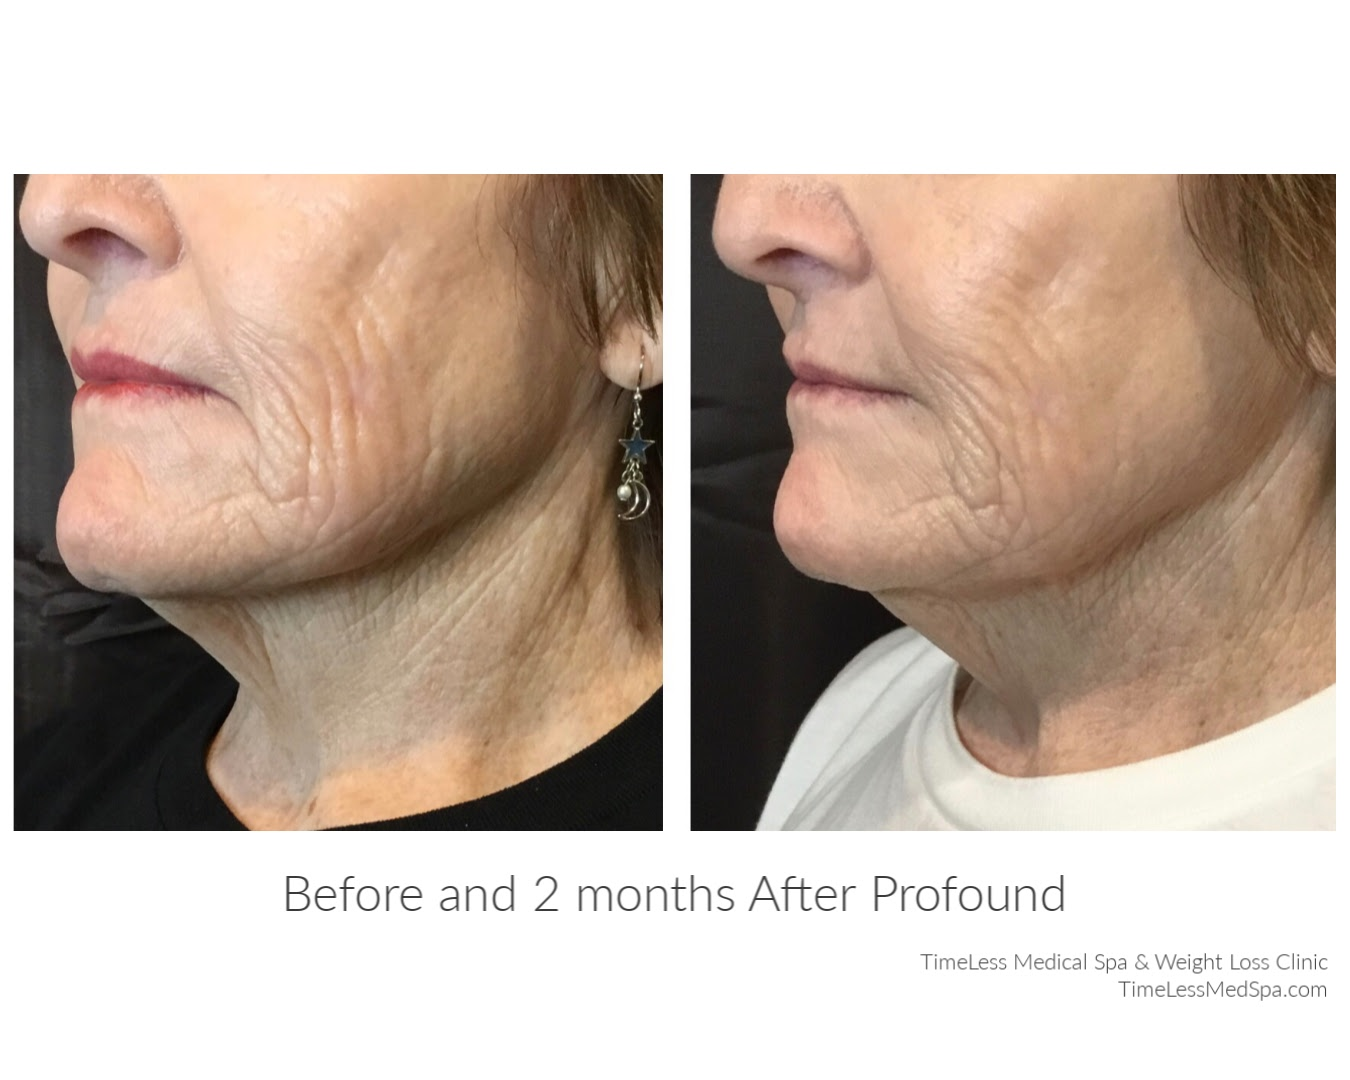 Reduced age lines and tighter skin after 2 months of using Profound RF